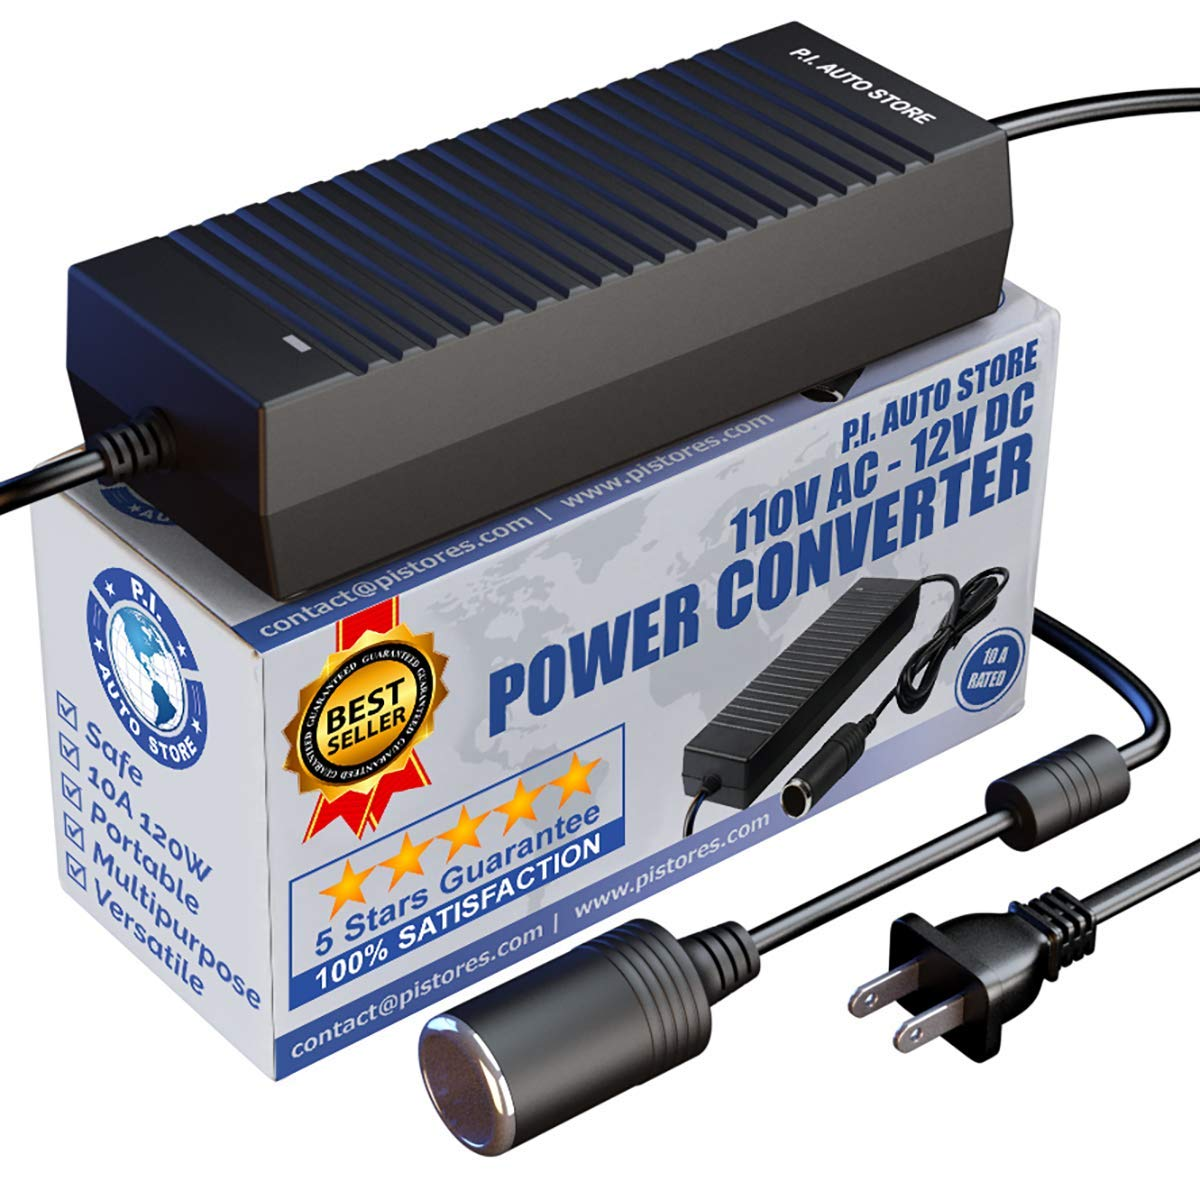 P.I. AUTO STORE - AC to DC Power Converter 110V - 12V 10A 120W. FCC & CE Approved ACDC Adapter use with 12 Volt Air Compressor, Tire Inflator, and Many More Accessories from a Wall Outlet